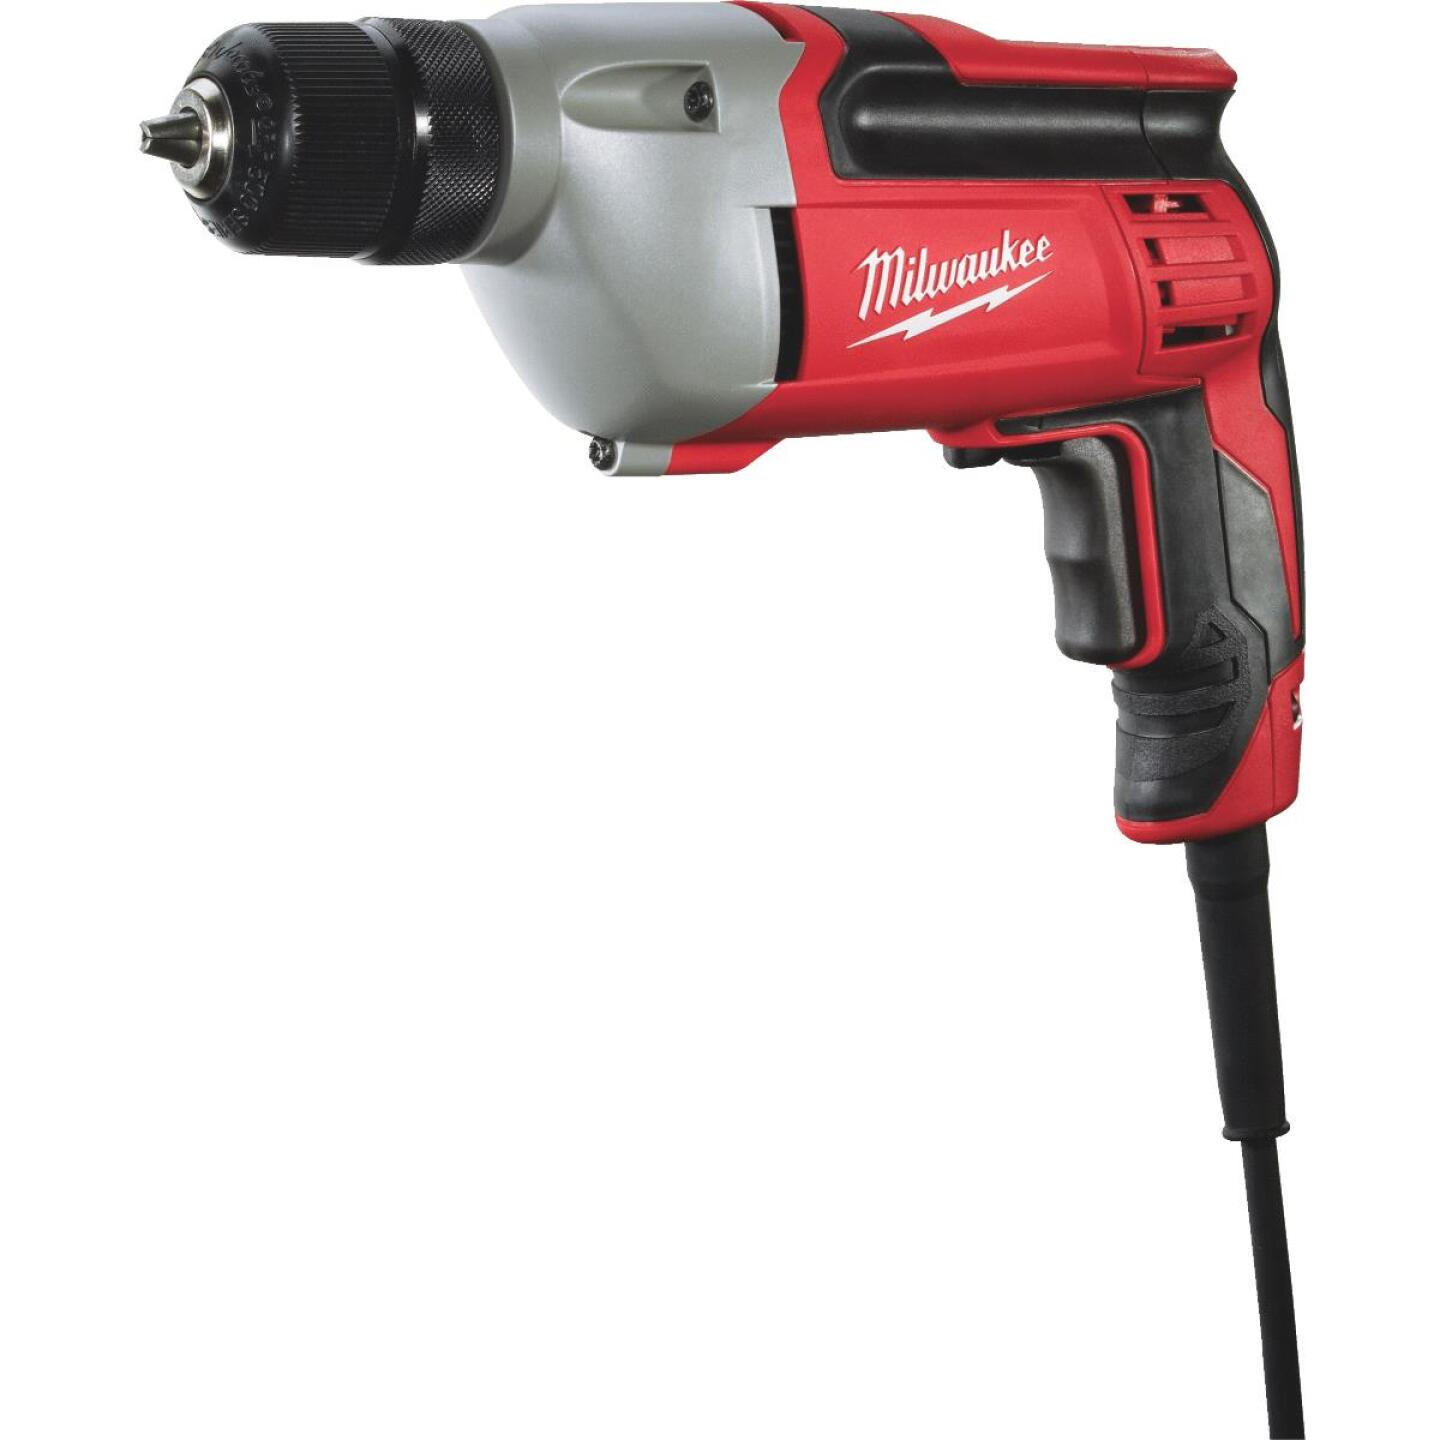 Milwaukee 3/8 In. 8-Amp Keyless Electric Drill Image 1